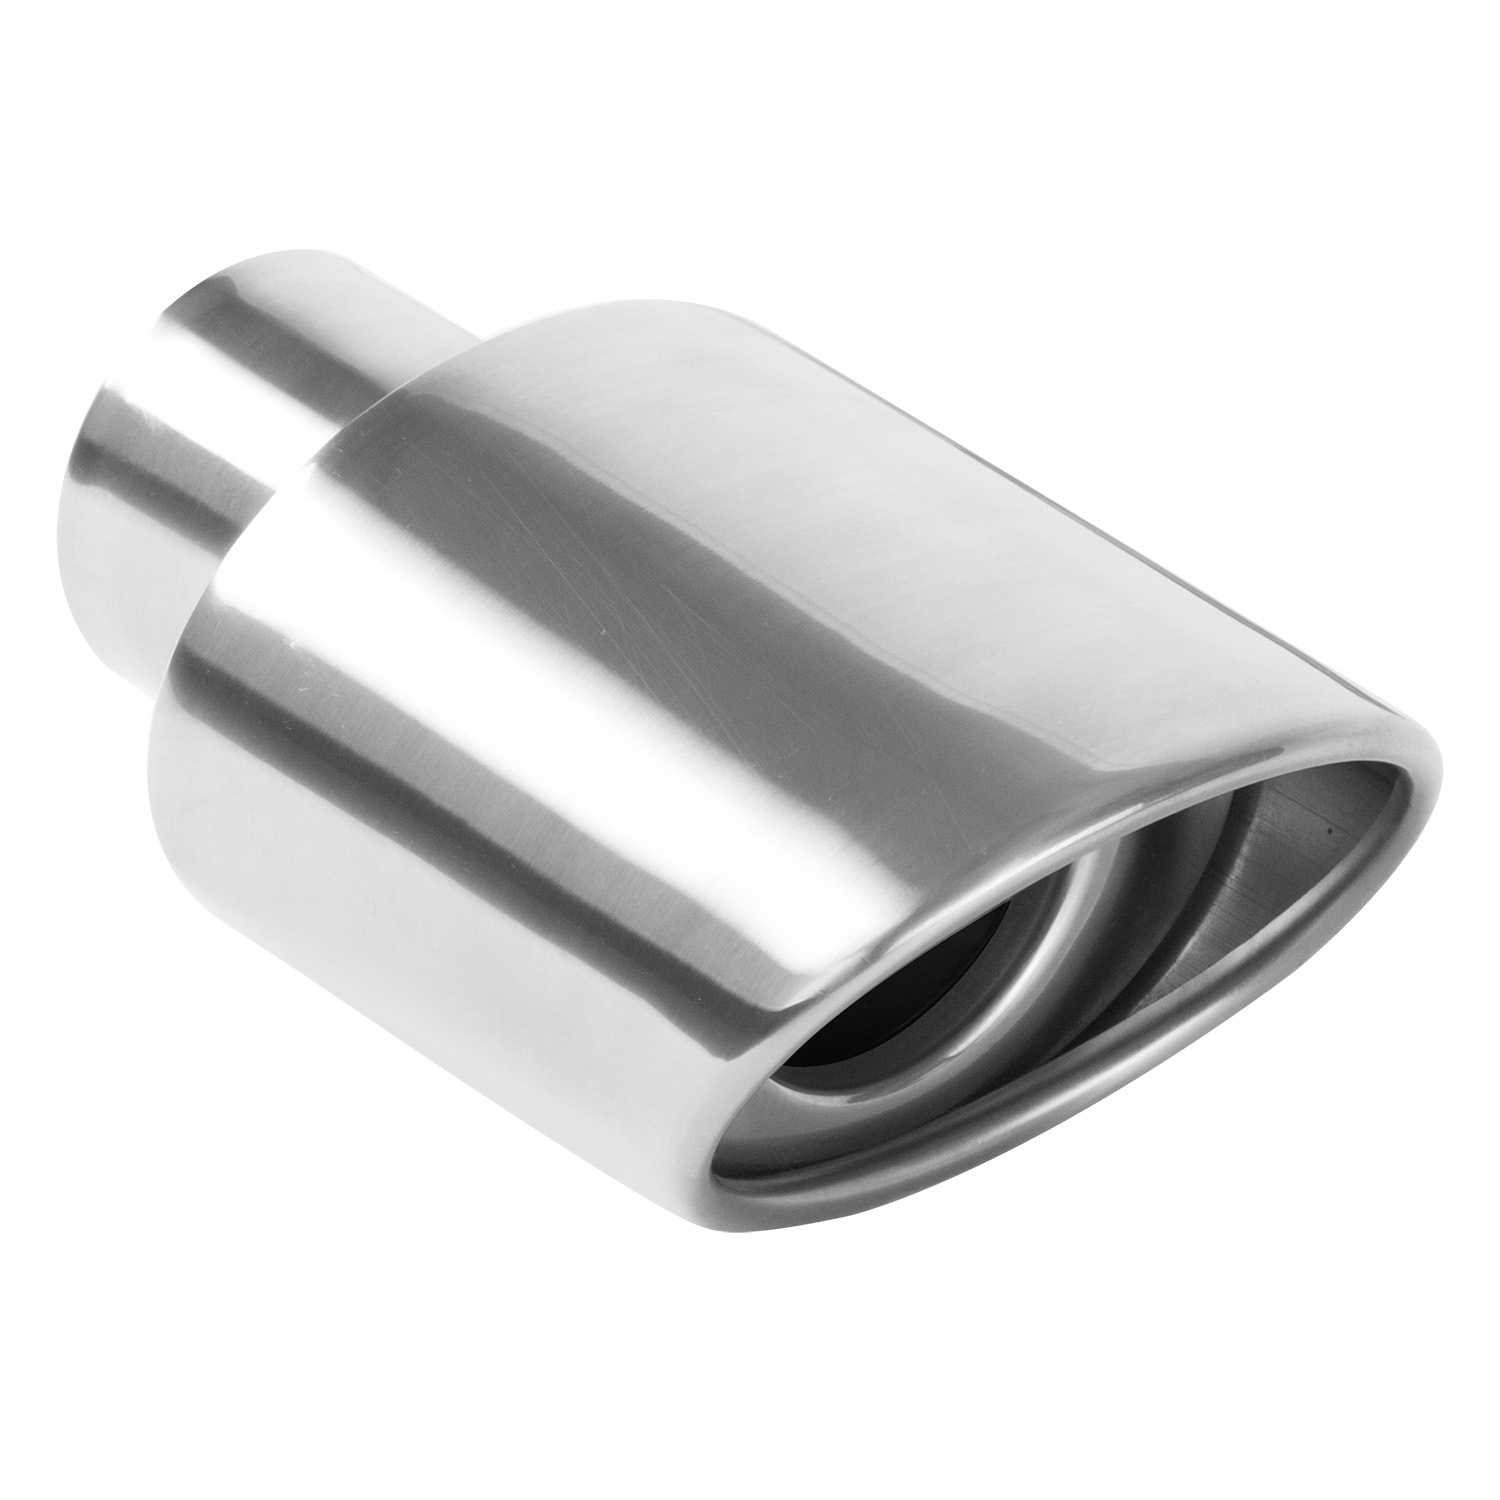 Magnaflow performance exhaust stainless steel